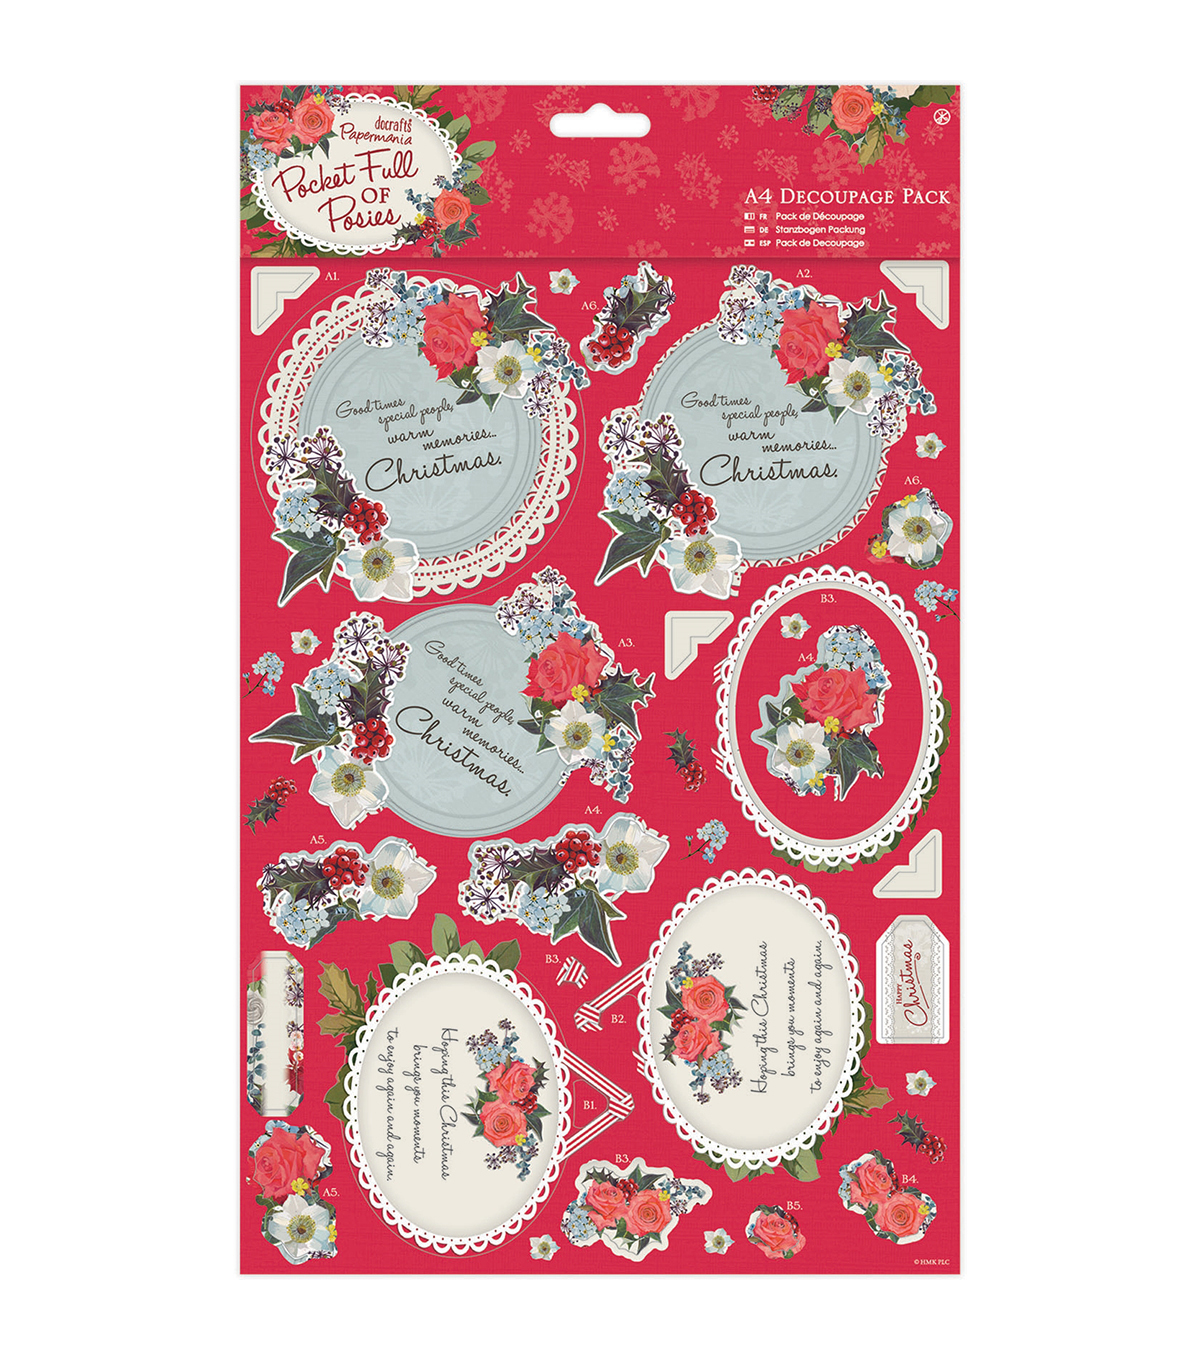 Papermania Pocket Full Of Posies A4 Decoupage Pack-Mum